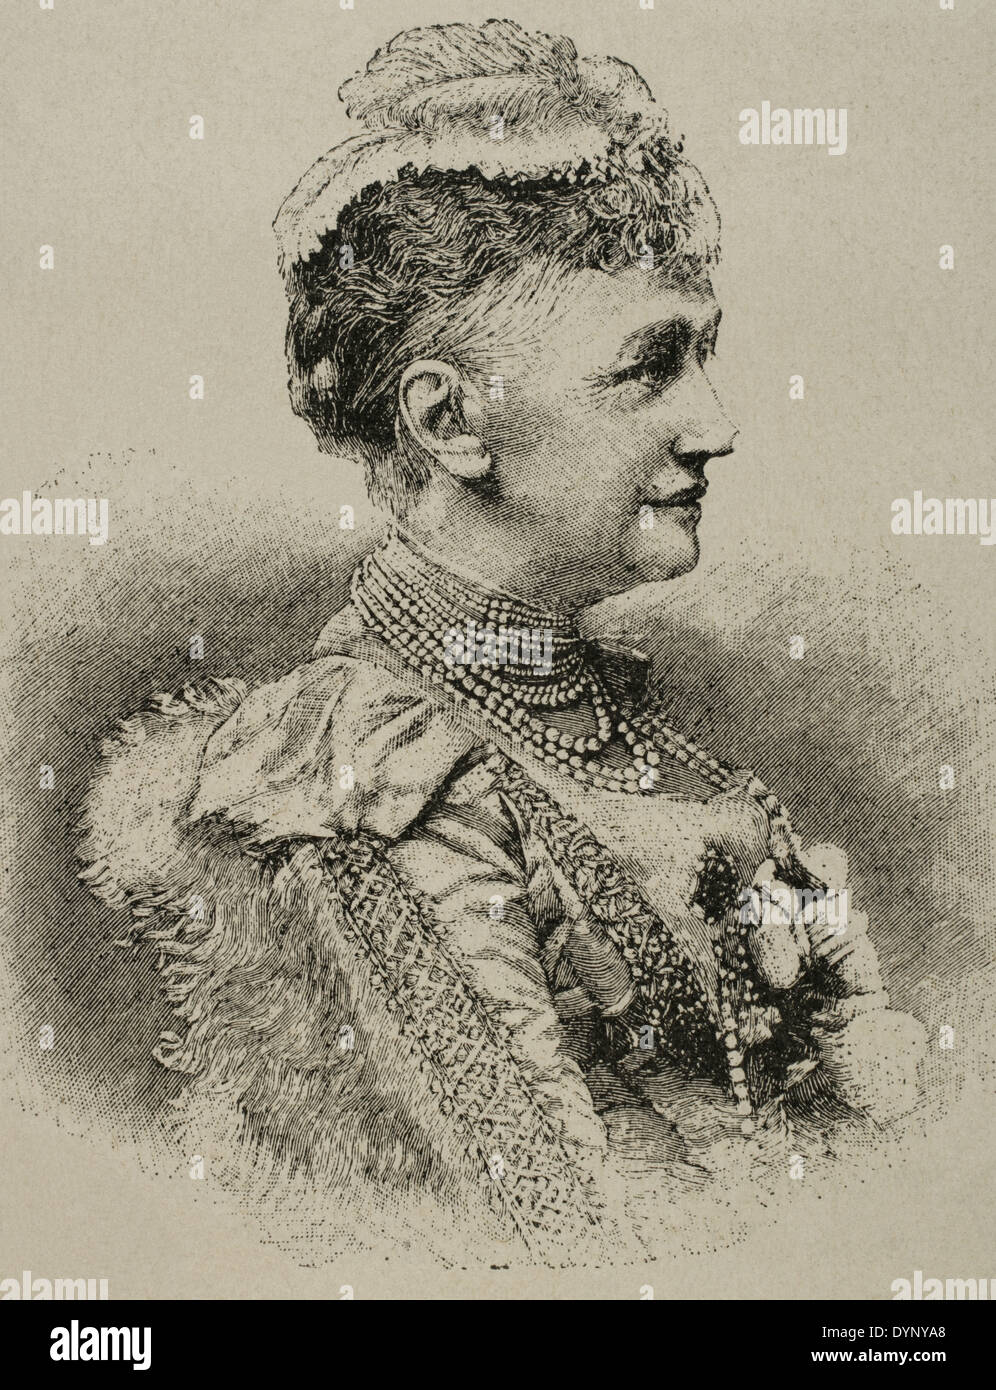 Louise of Hesse-Kassel (1817-1898). Princess and Queen consort of Denmark. Engraving in The Artistic Illustration, 1889. Stock Photo